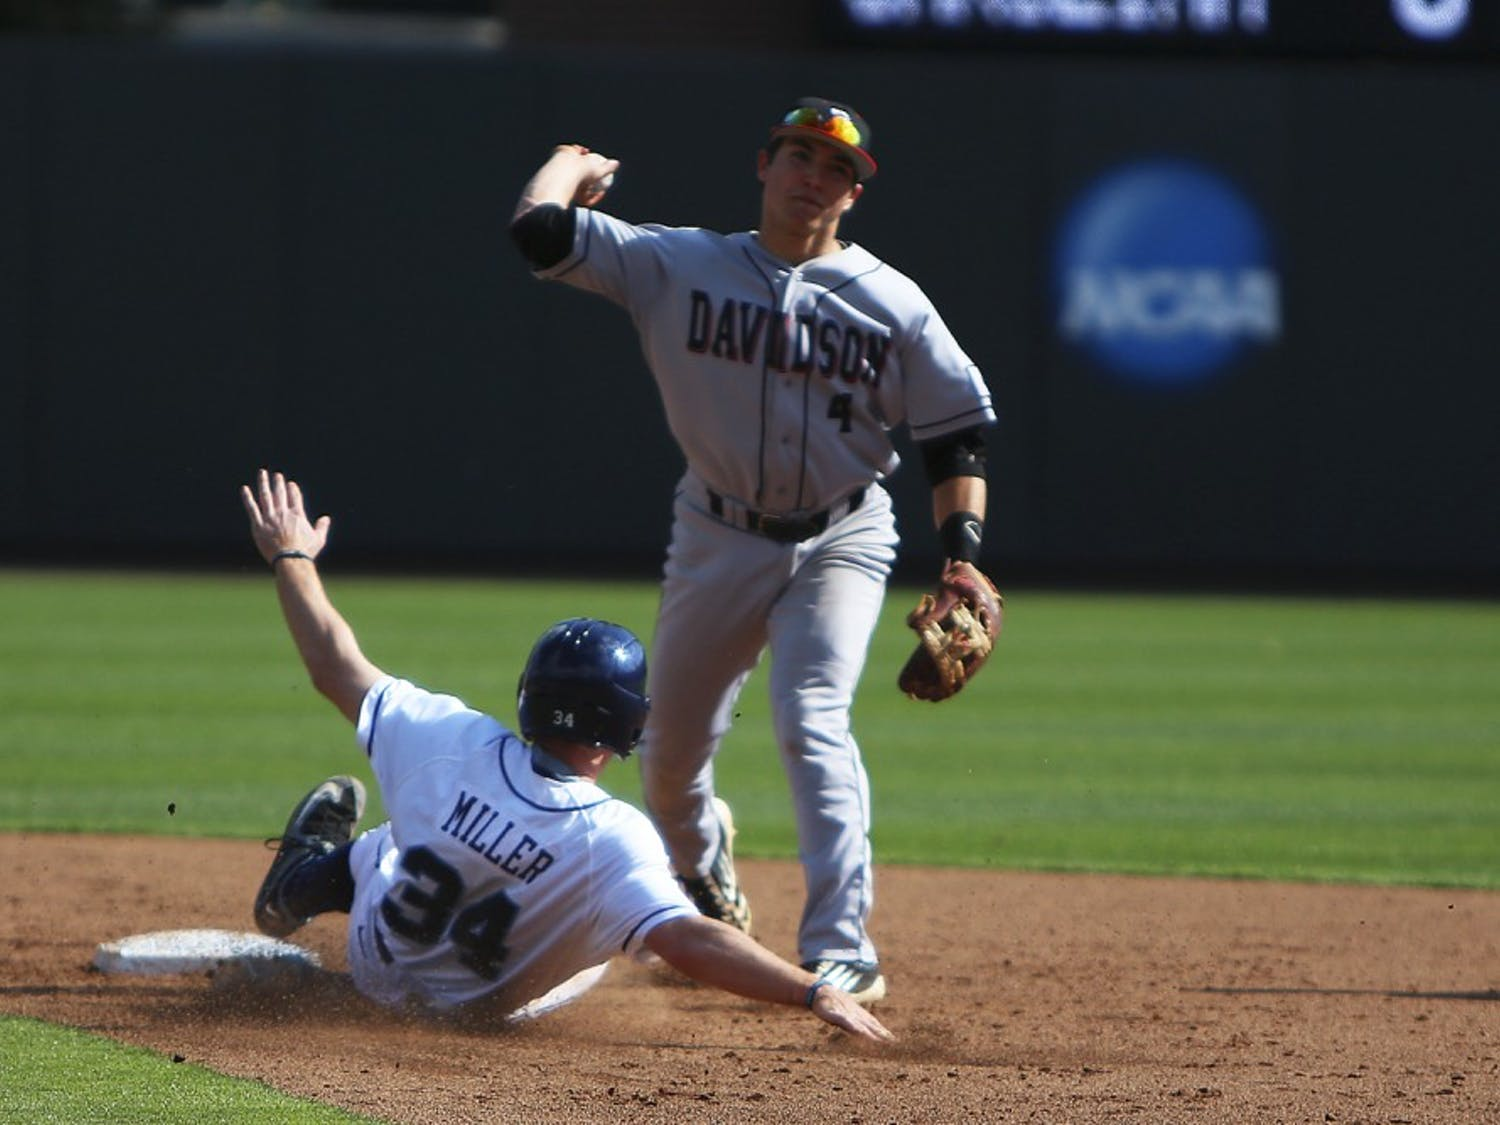 Left fielder Brian Miller (34) slides into second base where he is tagged out.